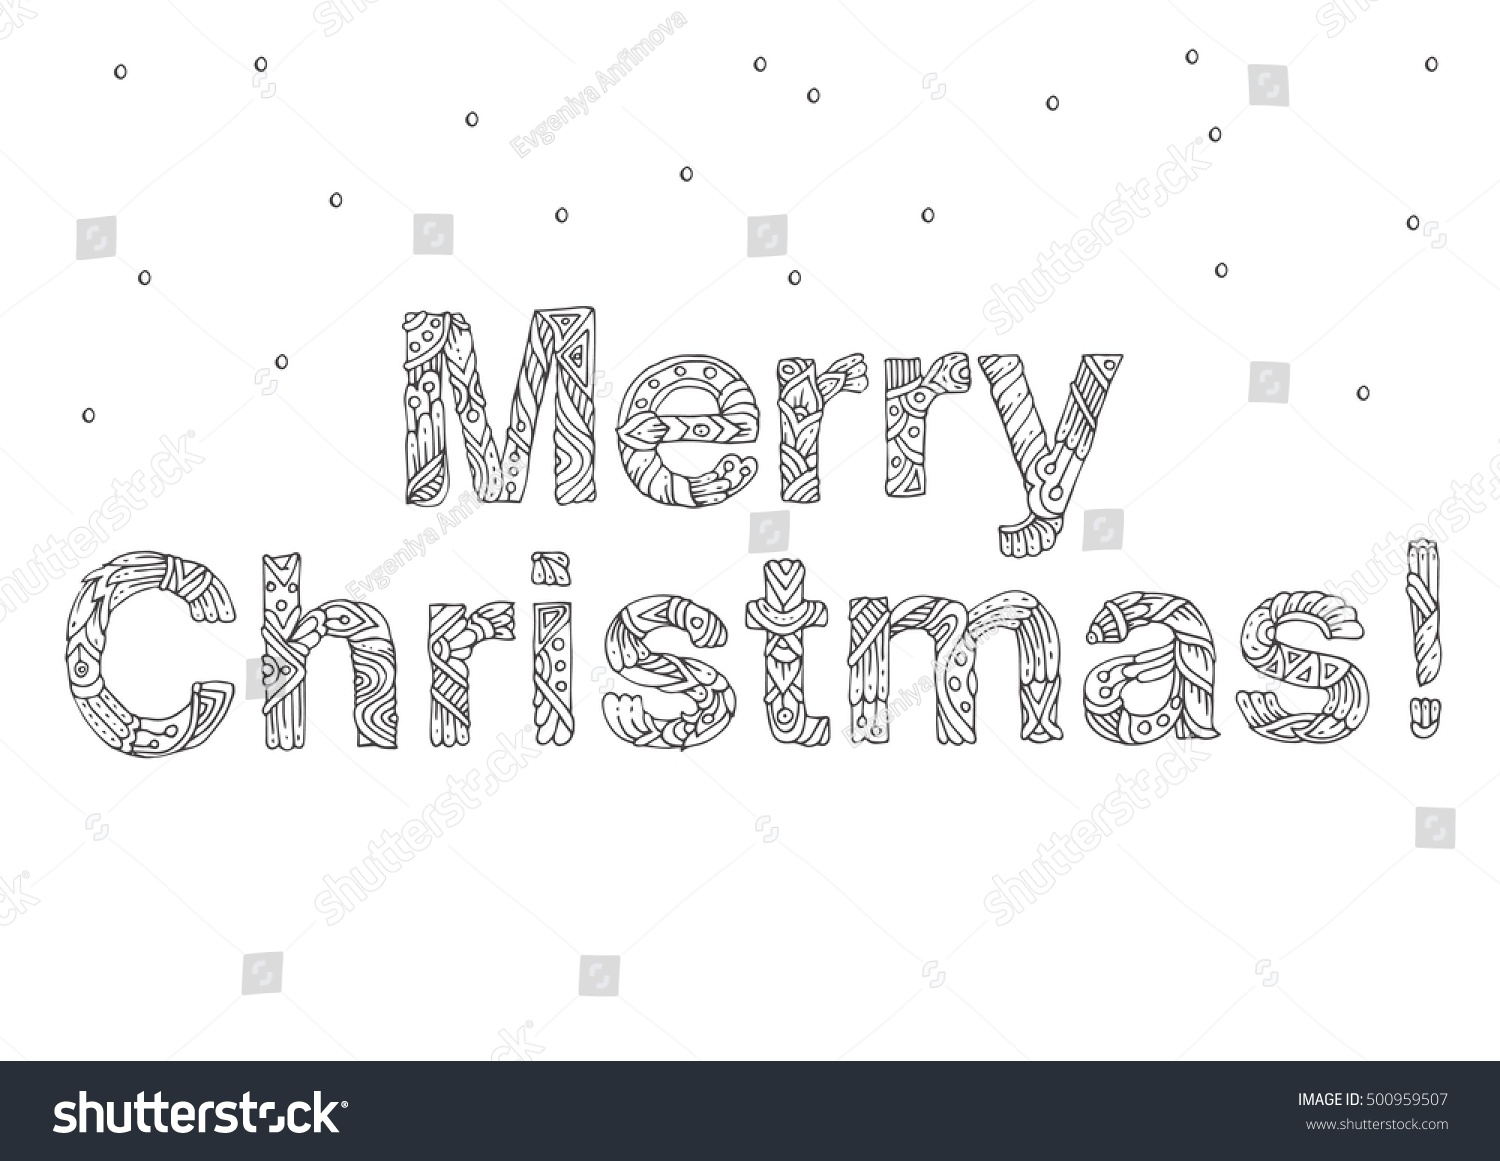 Merry Christmas Words Coloring Pages With Ethnic Floral Doodle Stock Vector Royalty